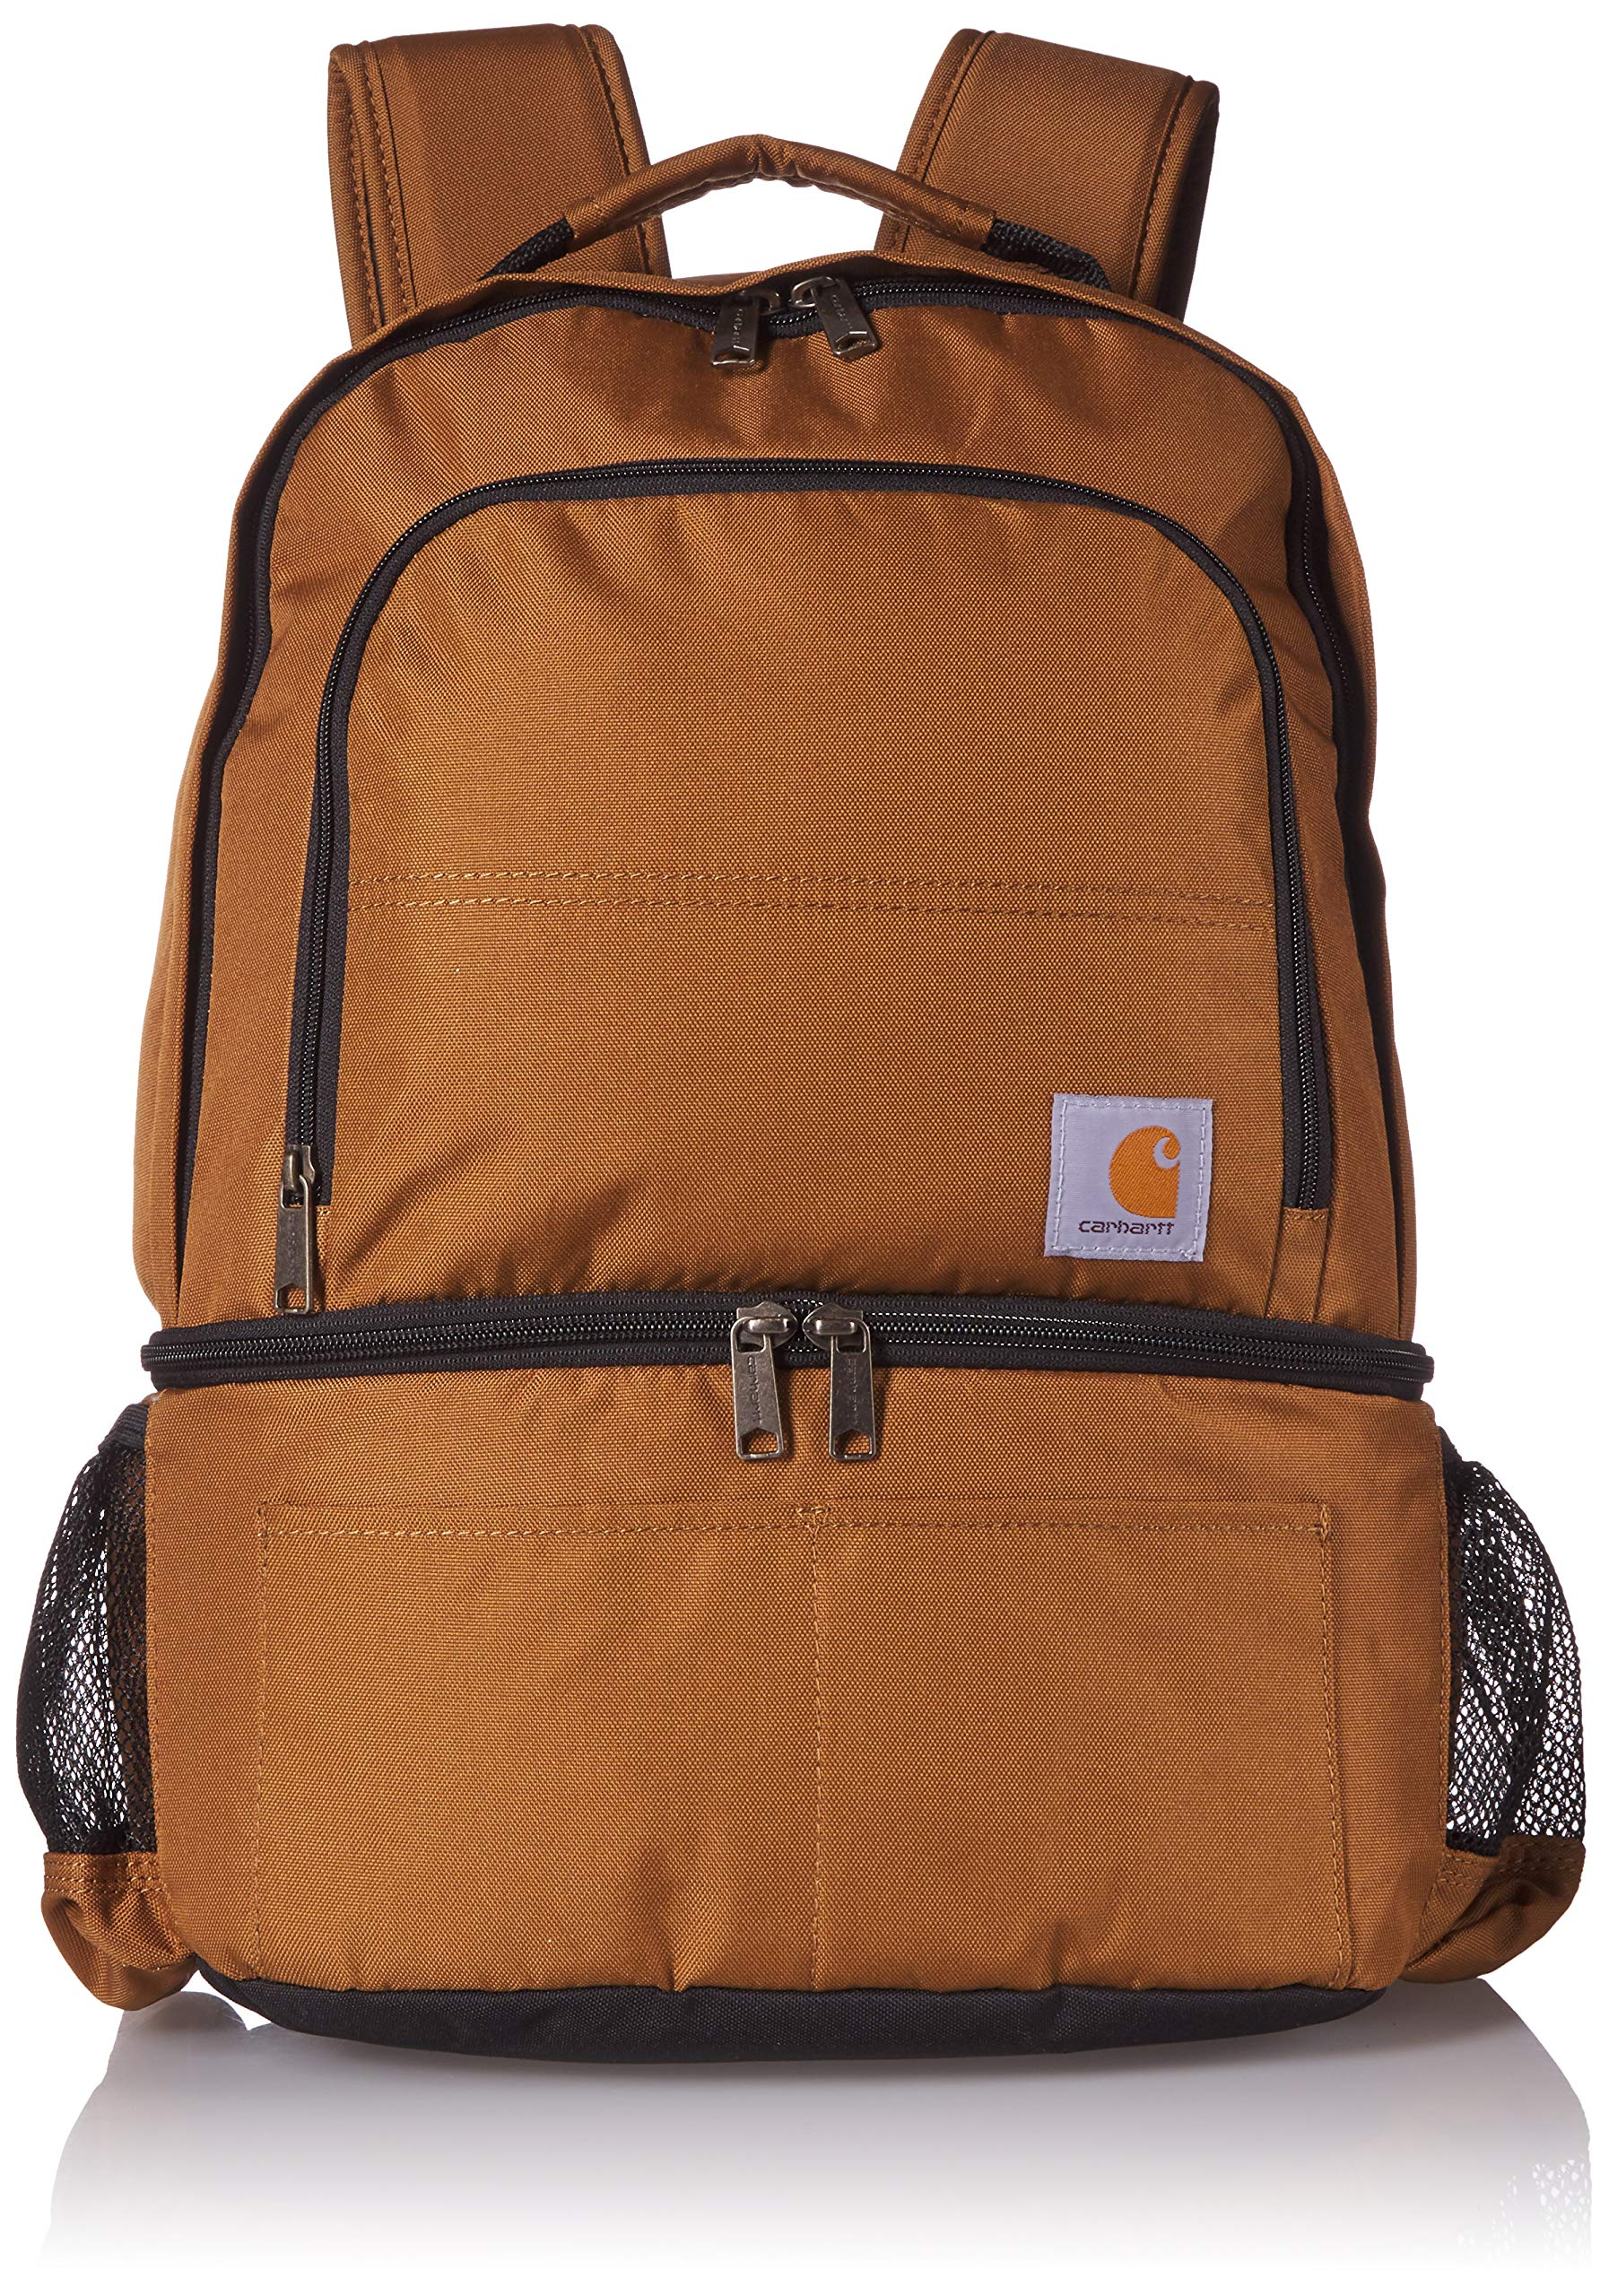 Carhartt 2-in-1 Insulated Cooler Backpack, Brown by Carhartt